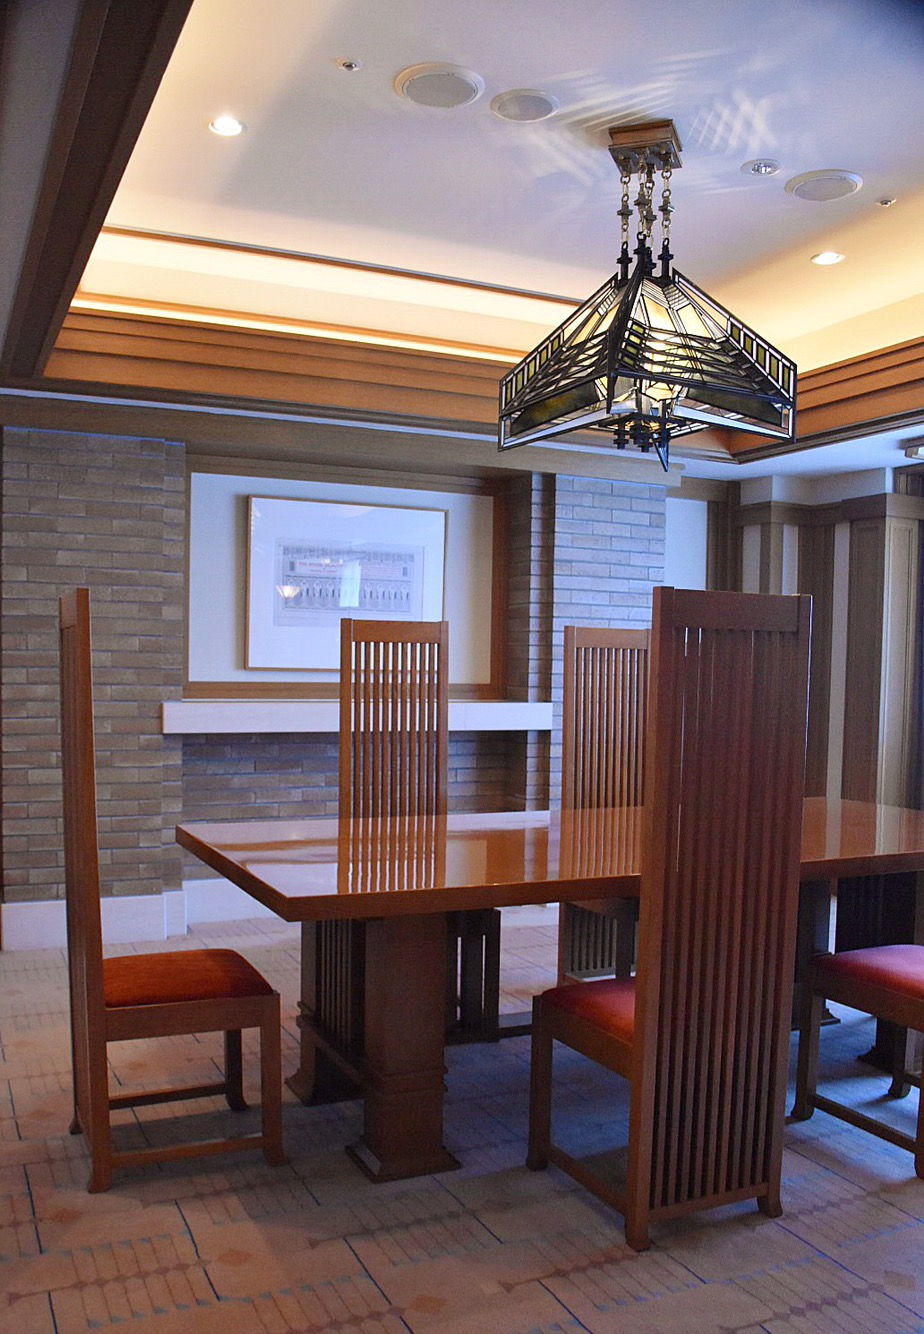 The Frank Lloyd Wright Suite